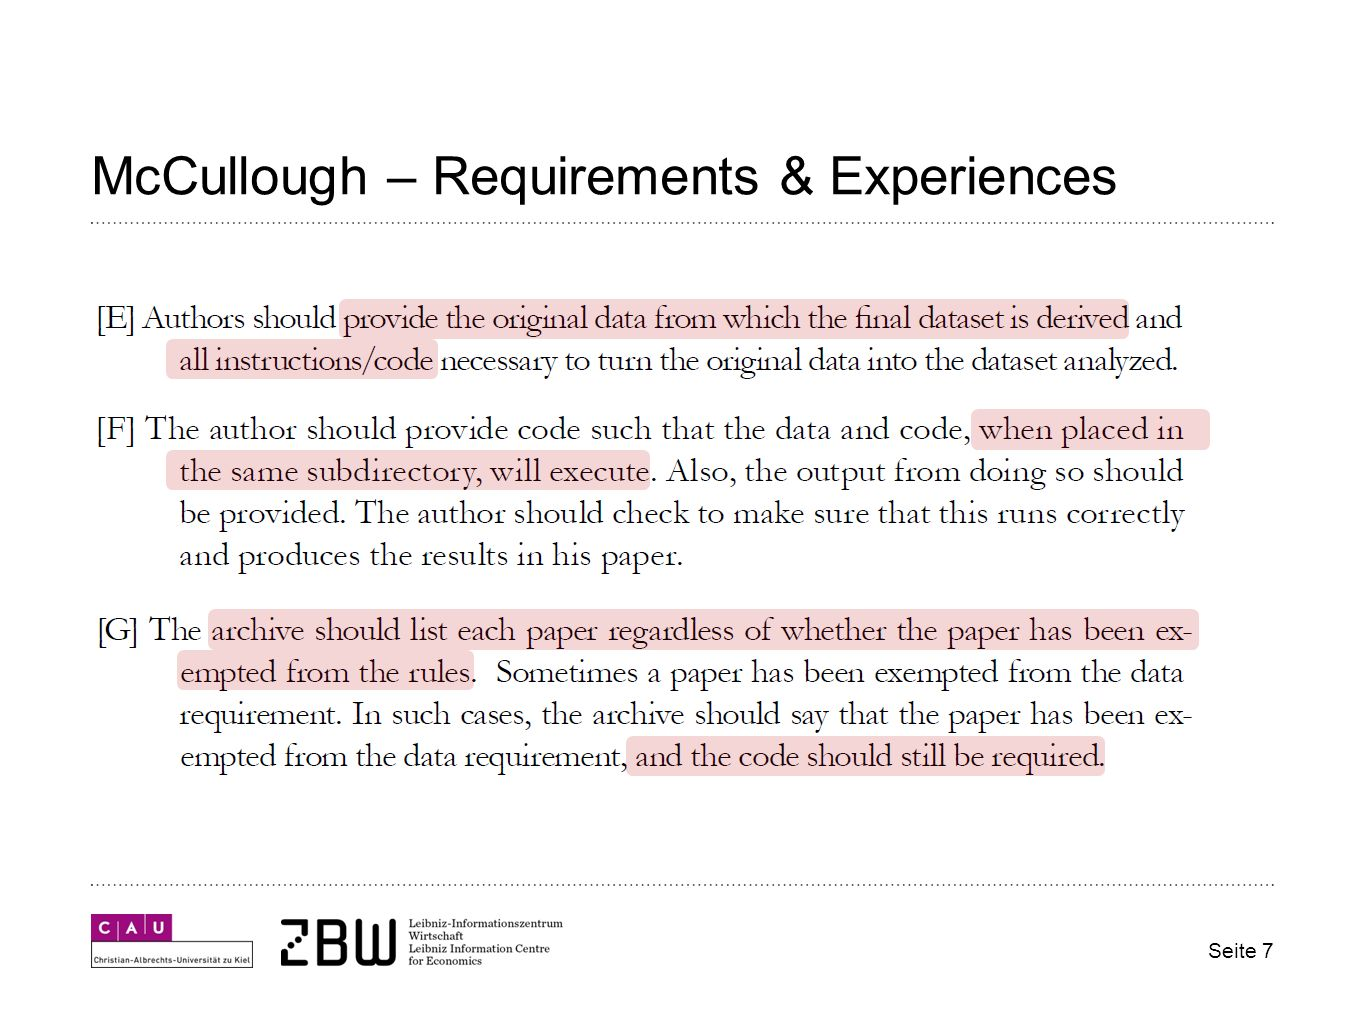 McCullough – Requirements & Experiences Seite 7